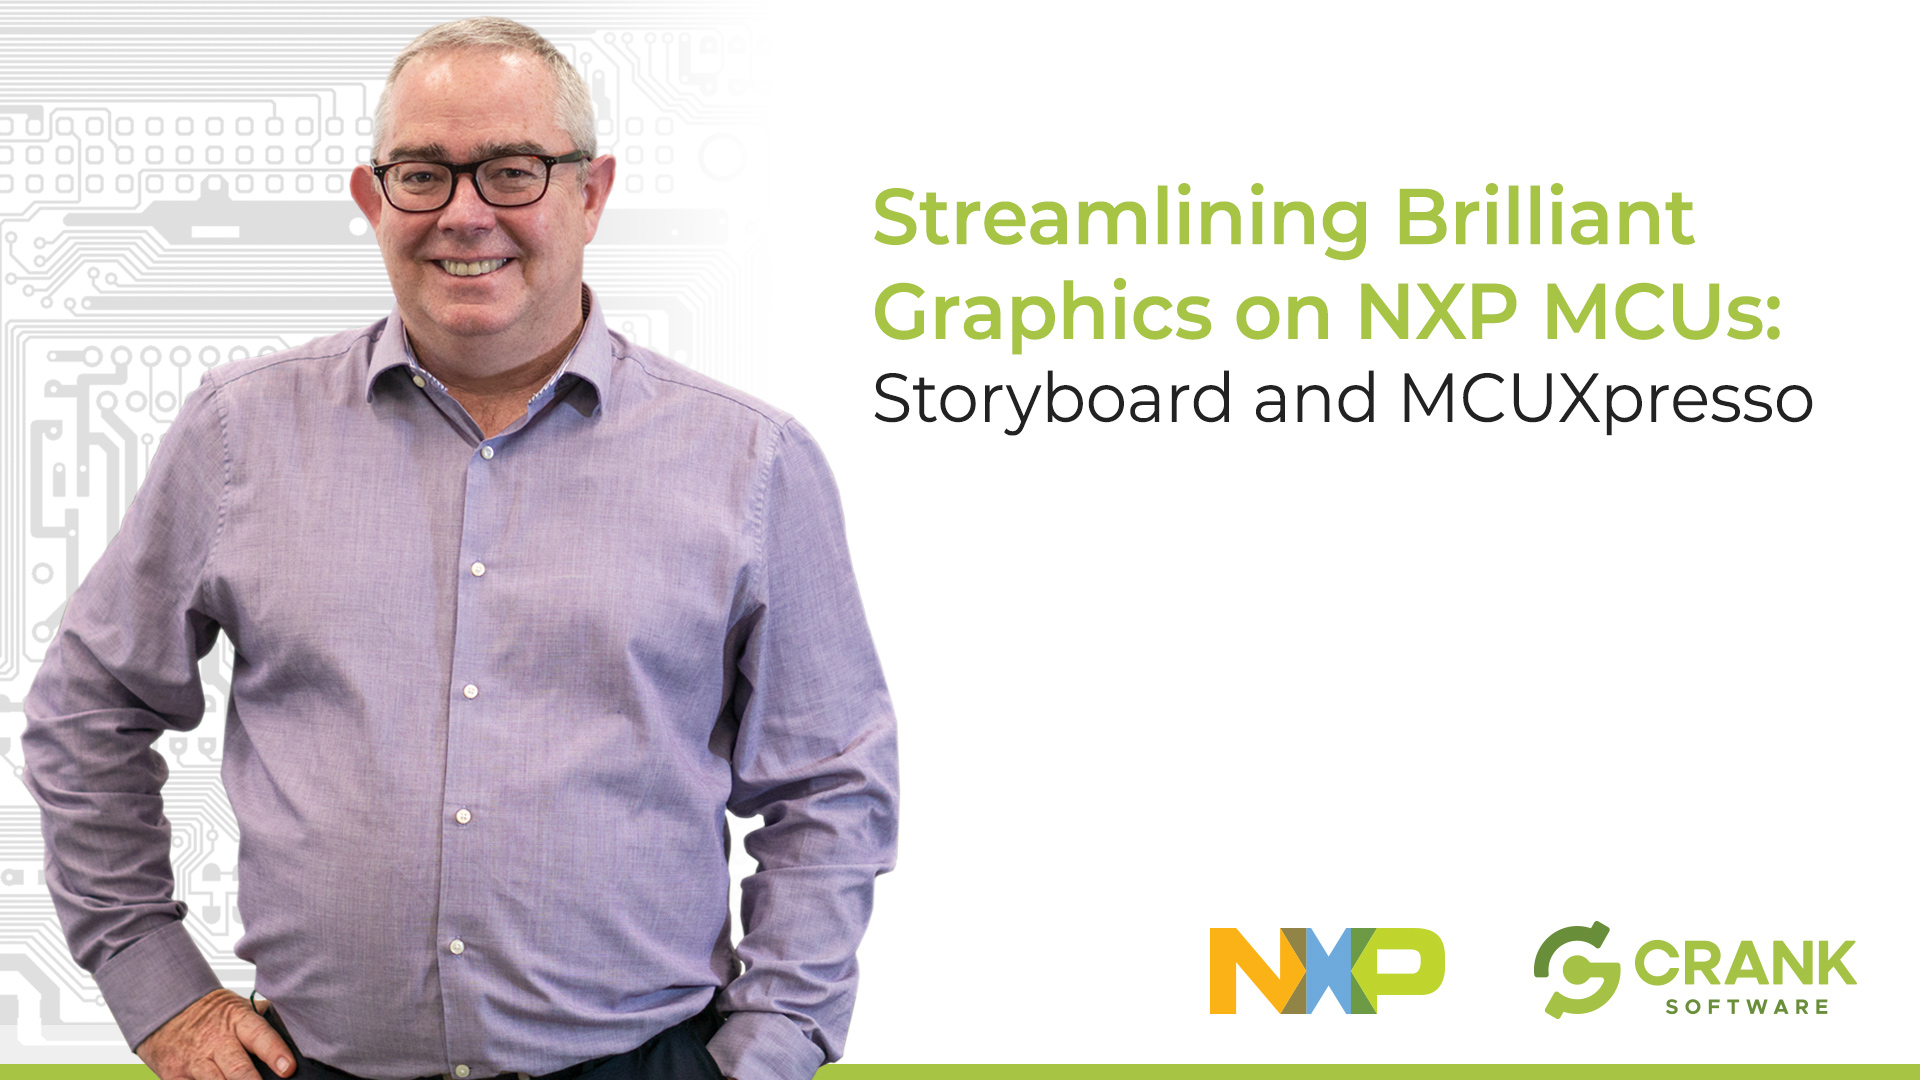 Streamlining_Brilliant_Graphics_on_NXP_MCUs___Storyboard_and_MCUXpresso